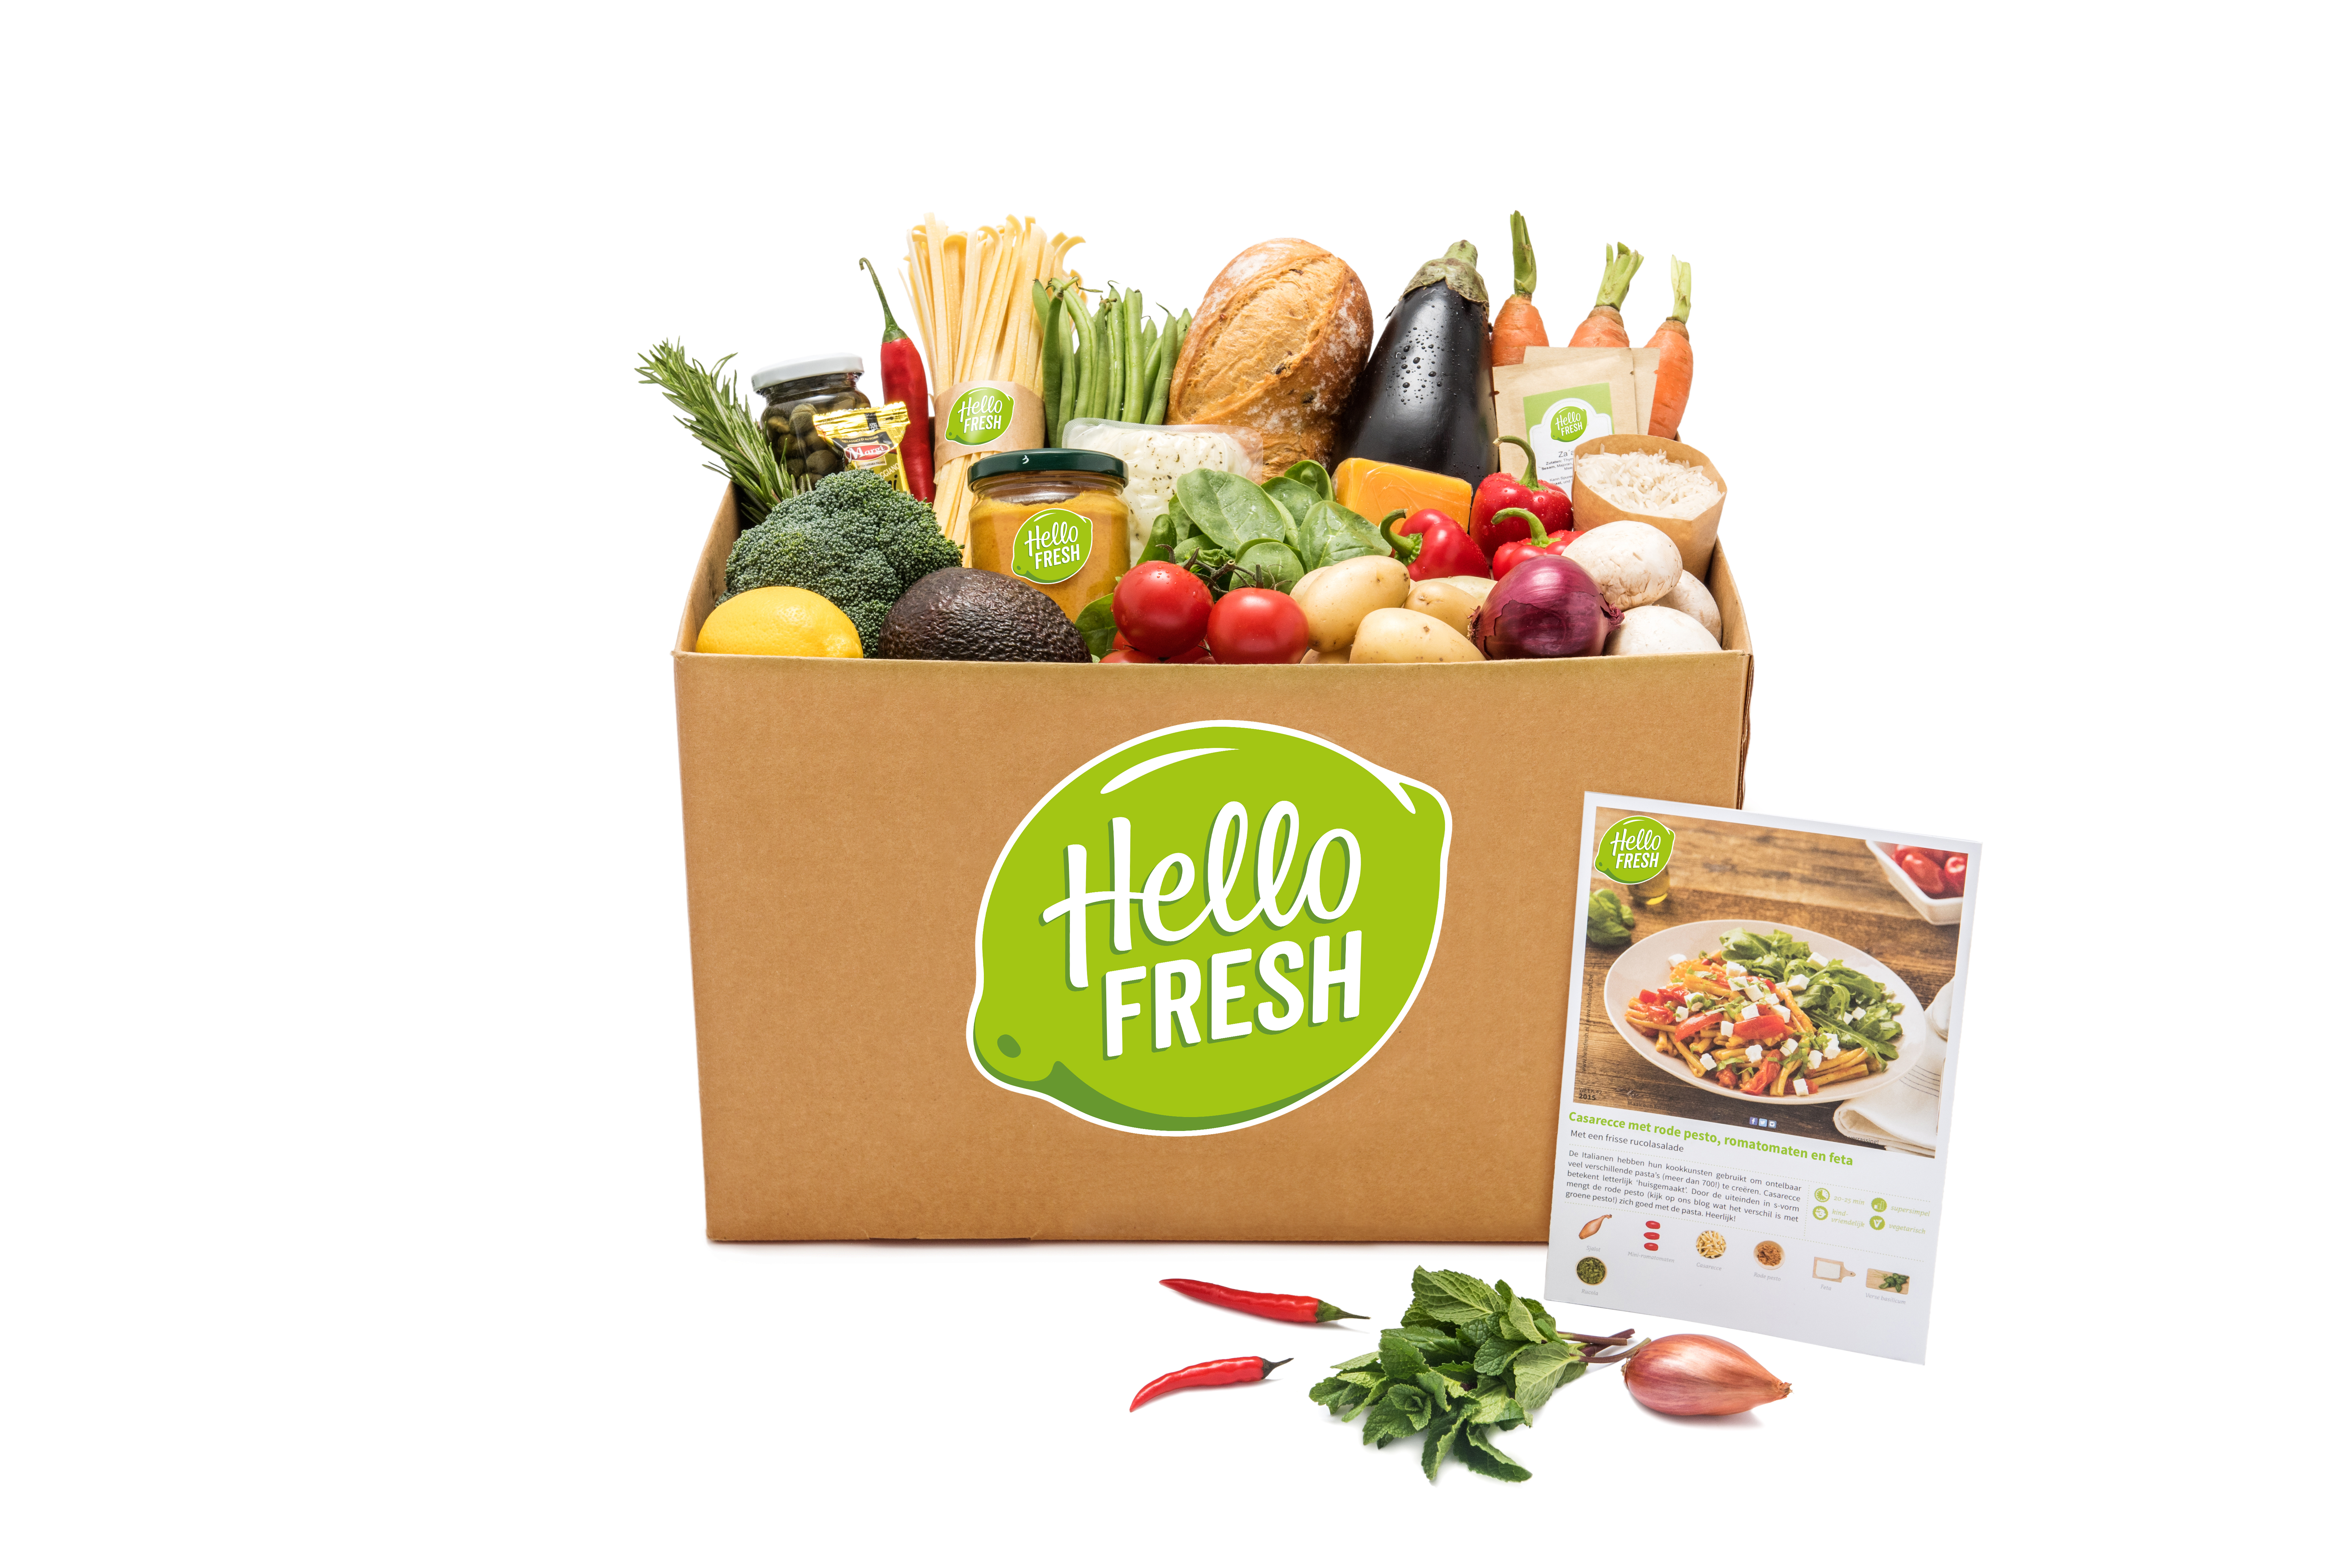 https://cdn.hellofresh.com/lu/cms/press/HelloFresh_Veggiebox.jpg